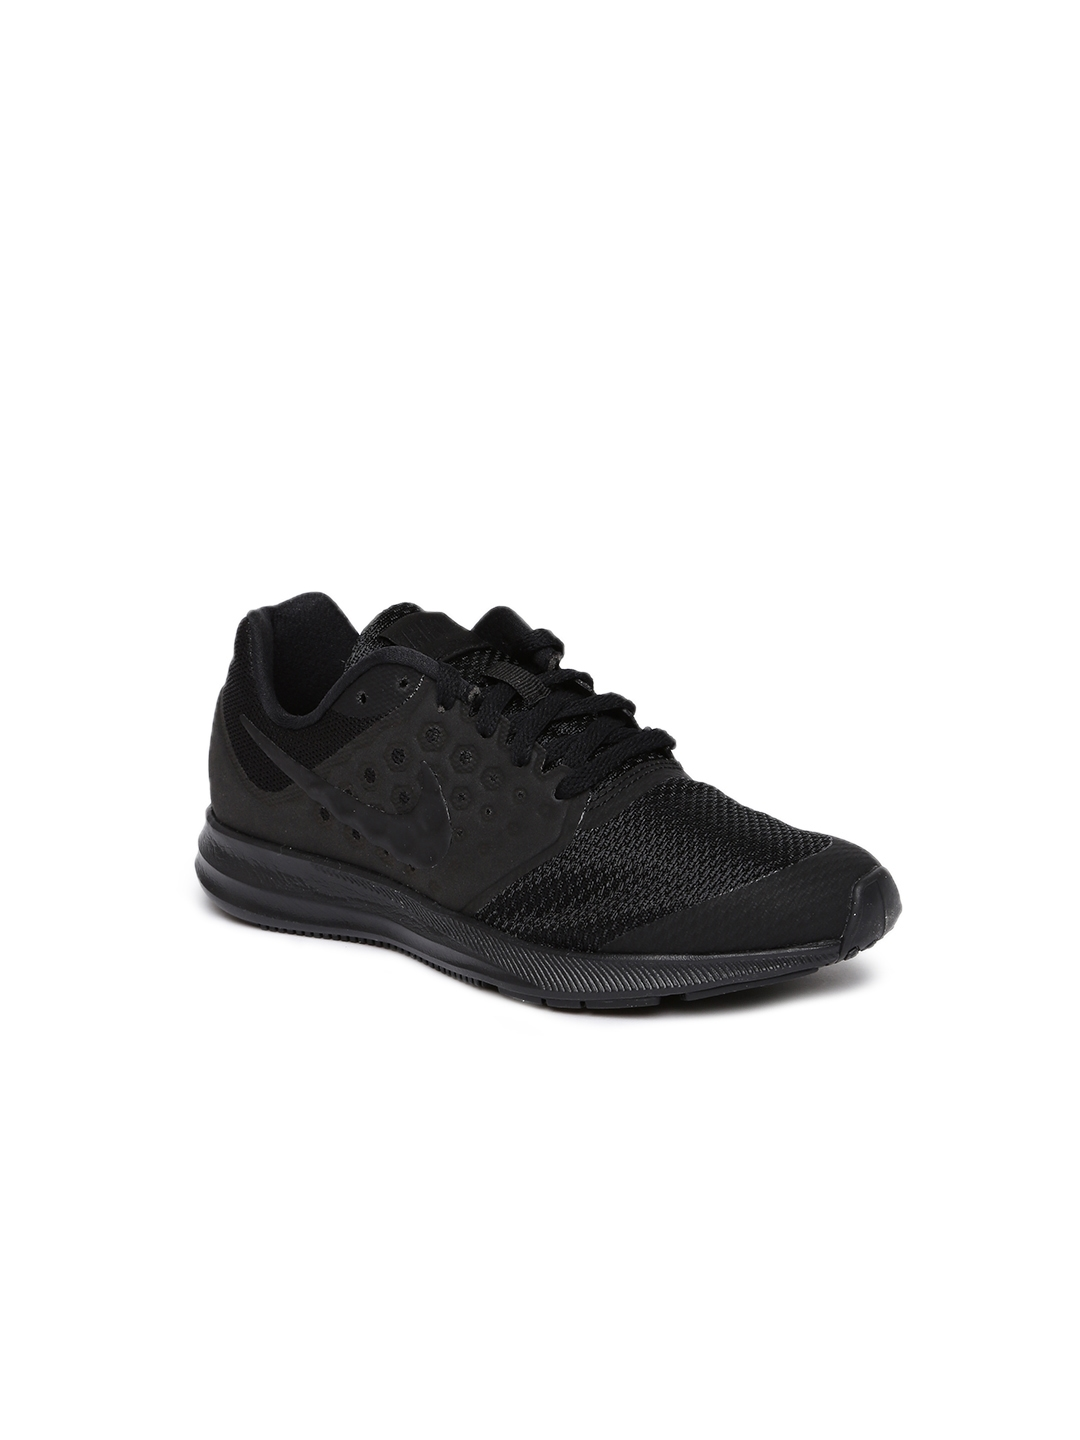 7aa066980990f Buy Nike Boys Black DOWNSHIFTER 7 Running Shoes - Sports Shoes for ...